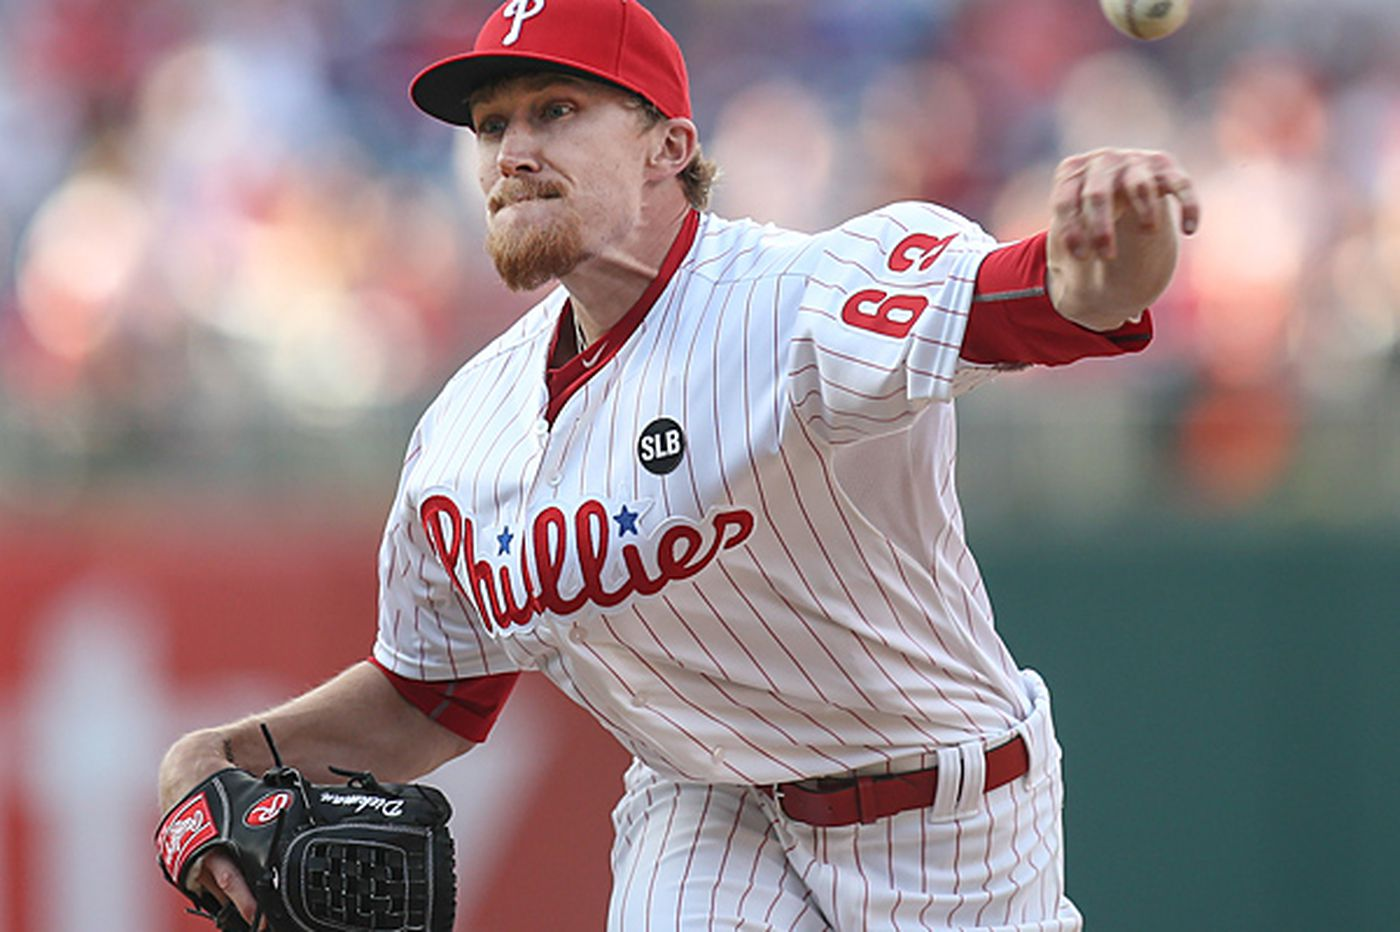 Phillies' Jake Diekman has his bags packed